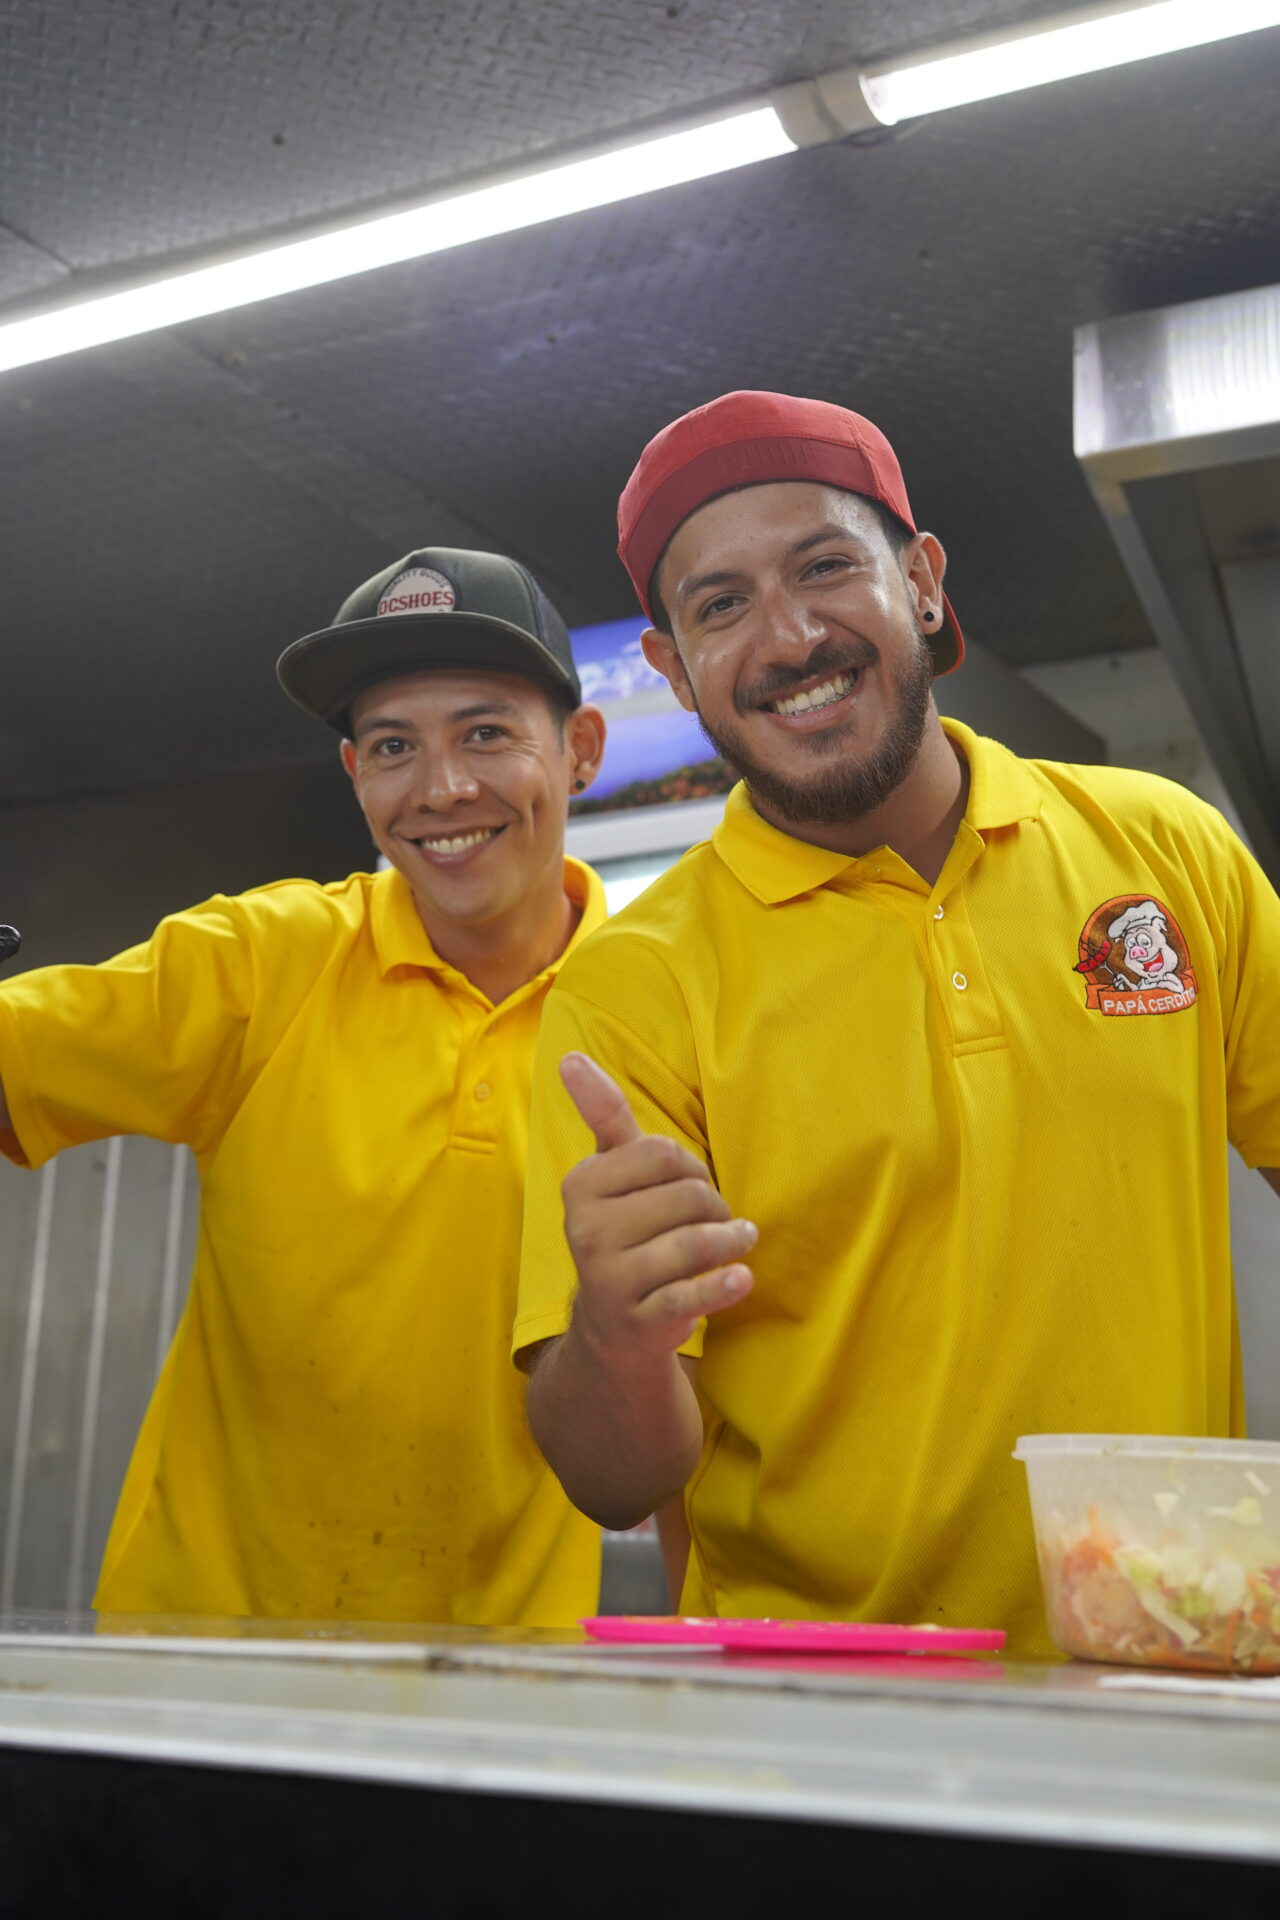 Happy food truck chefs smiling